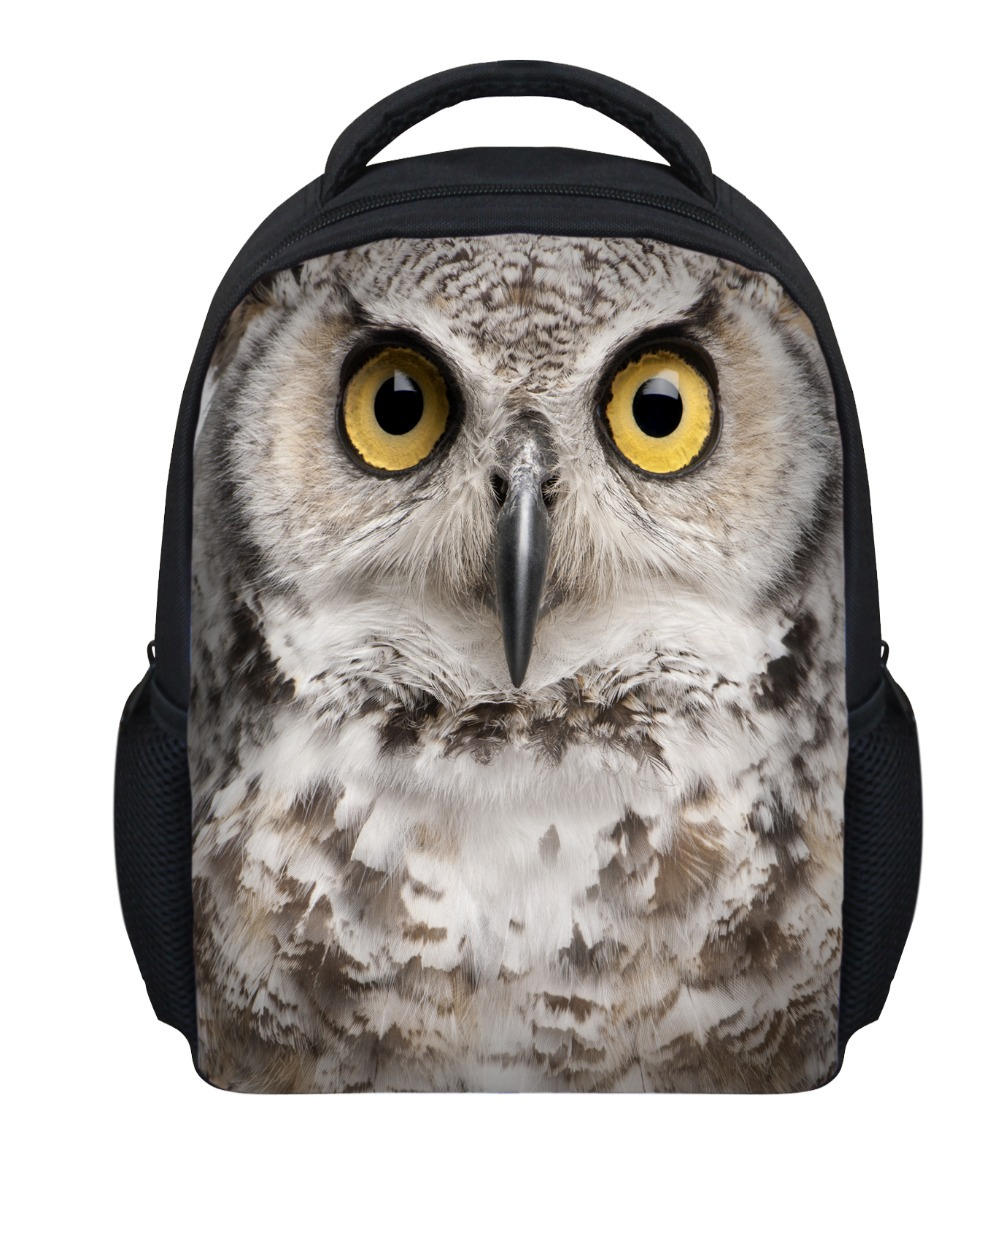 741345c04561 Buy mini 3d animals backpack for boys children school bags for kindergarten  baby cool owl girls backpacks child kids bagpack mochila in Cheap Price on  ...